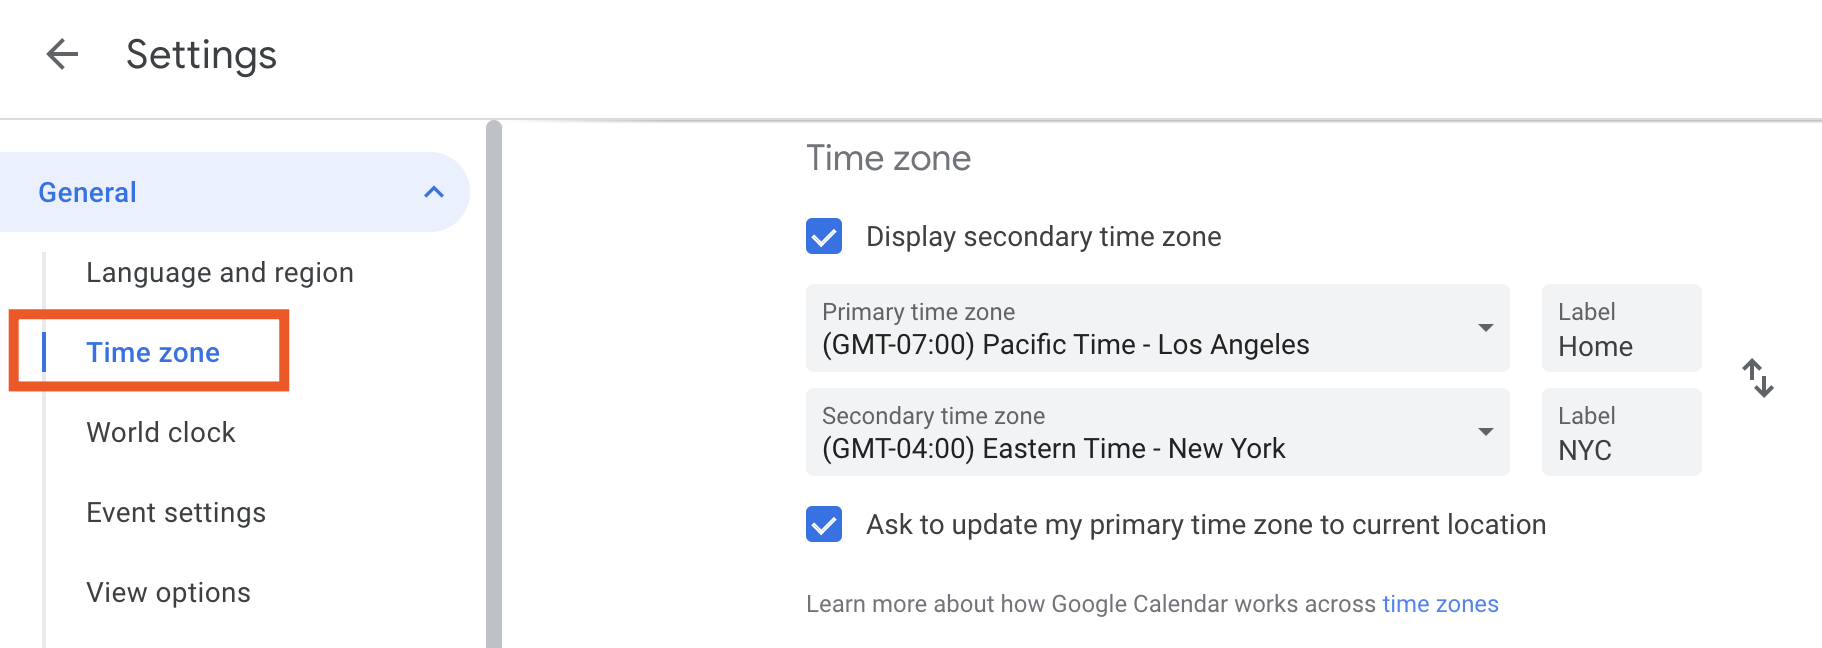 Time zone settings in Google Calendar